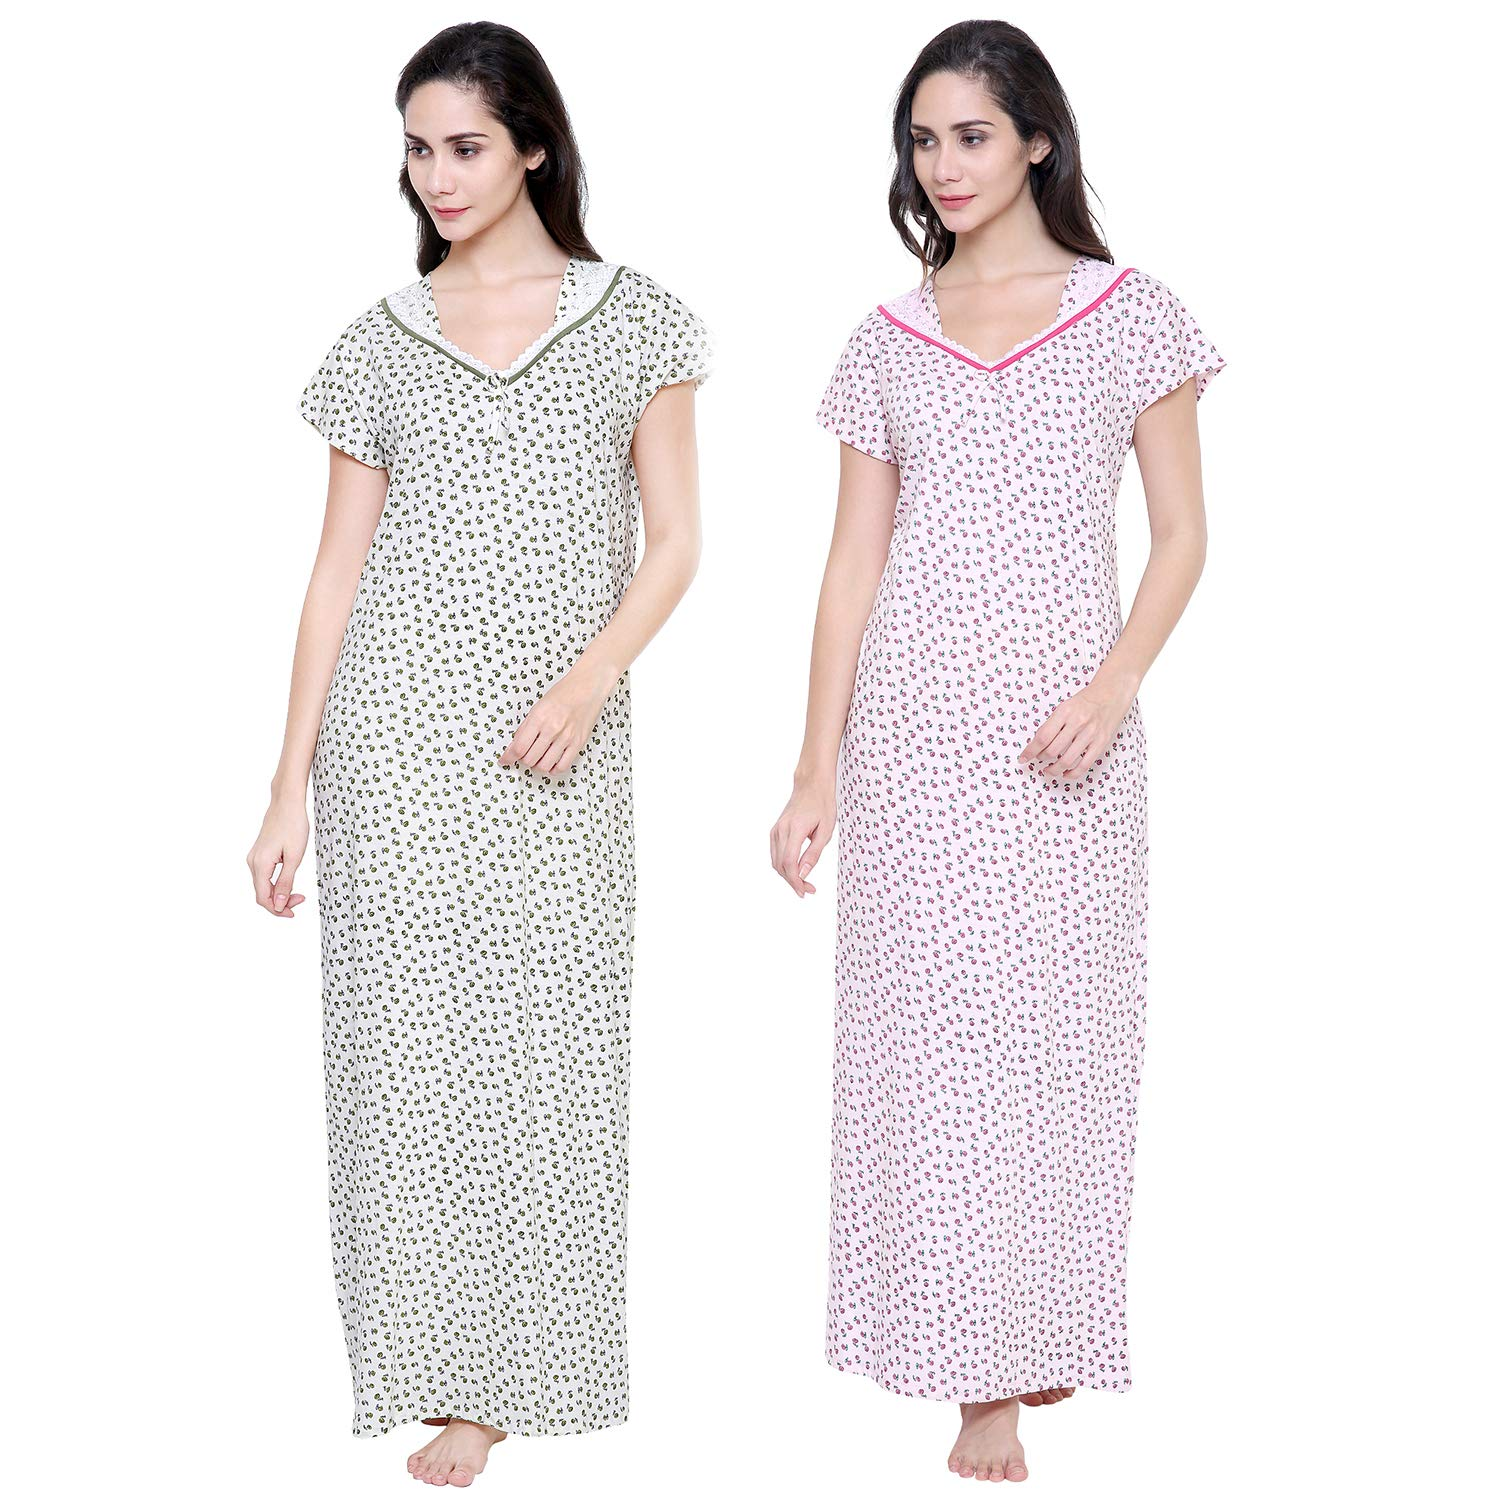 Secret Wish Pink Women s Off-White   Baby-Pink Hosiery Nighties Combo (Free  Size)  Amazon.in  Clothing   Accessories 0567e779b